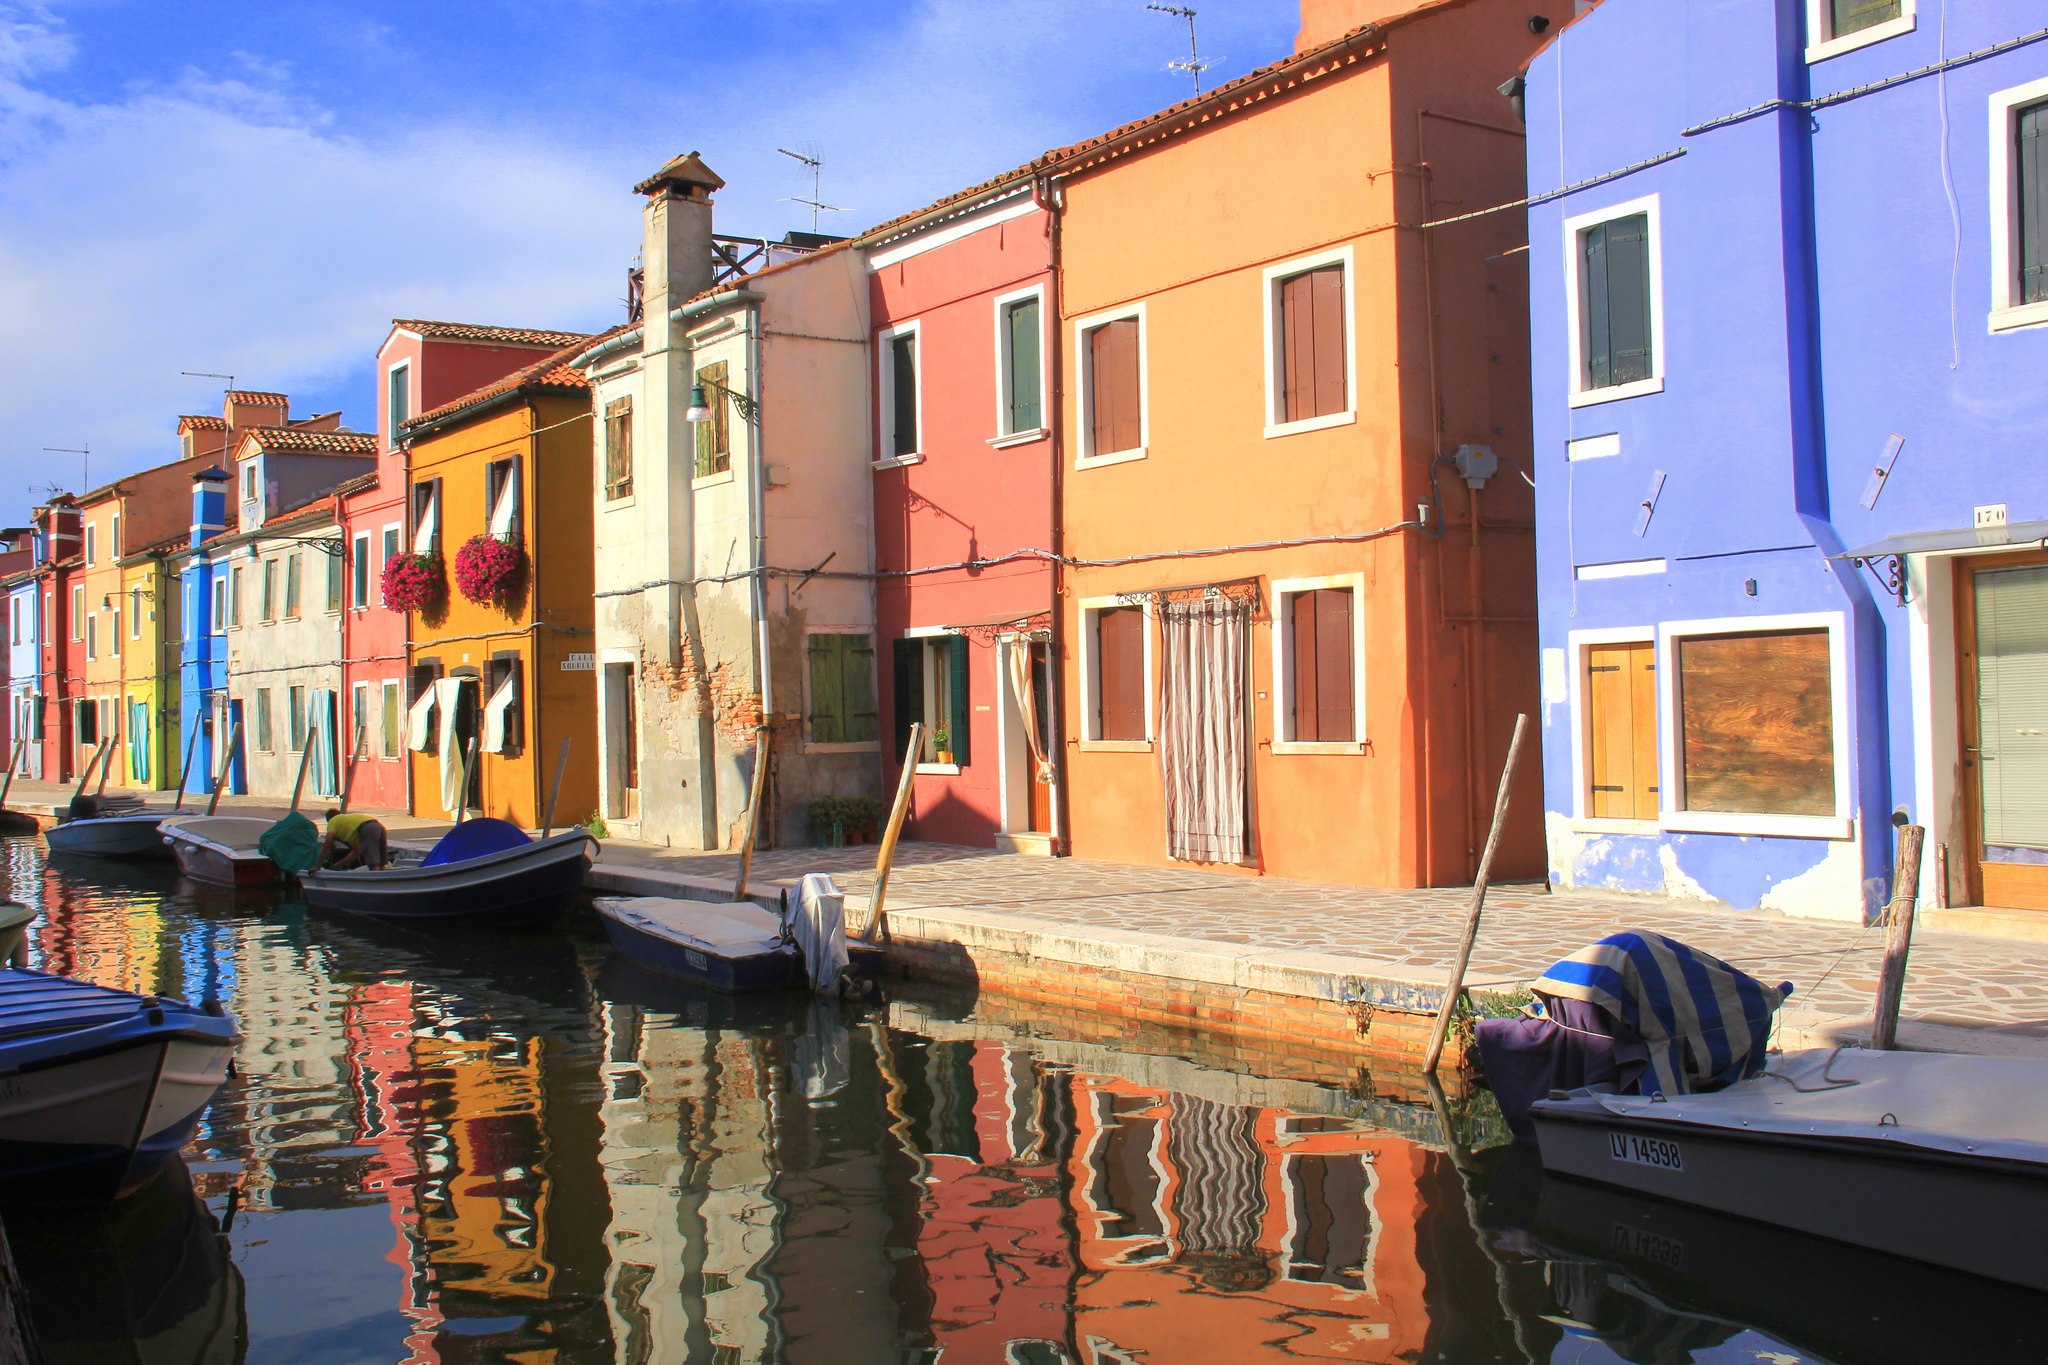 Murano island is one of Italy's most photographed places